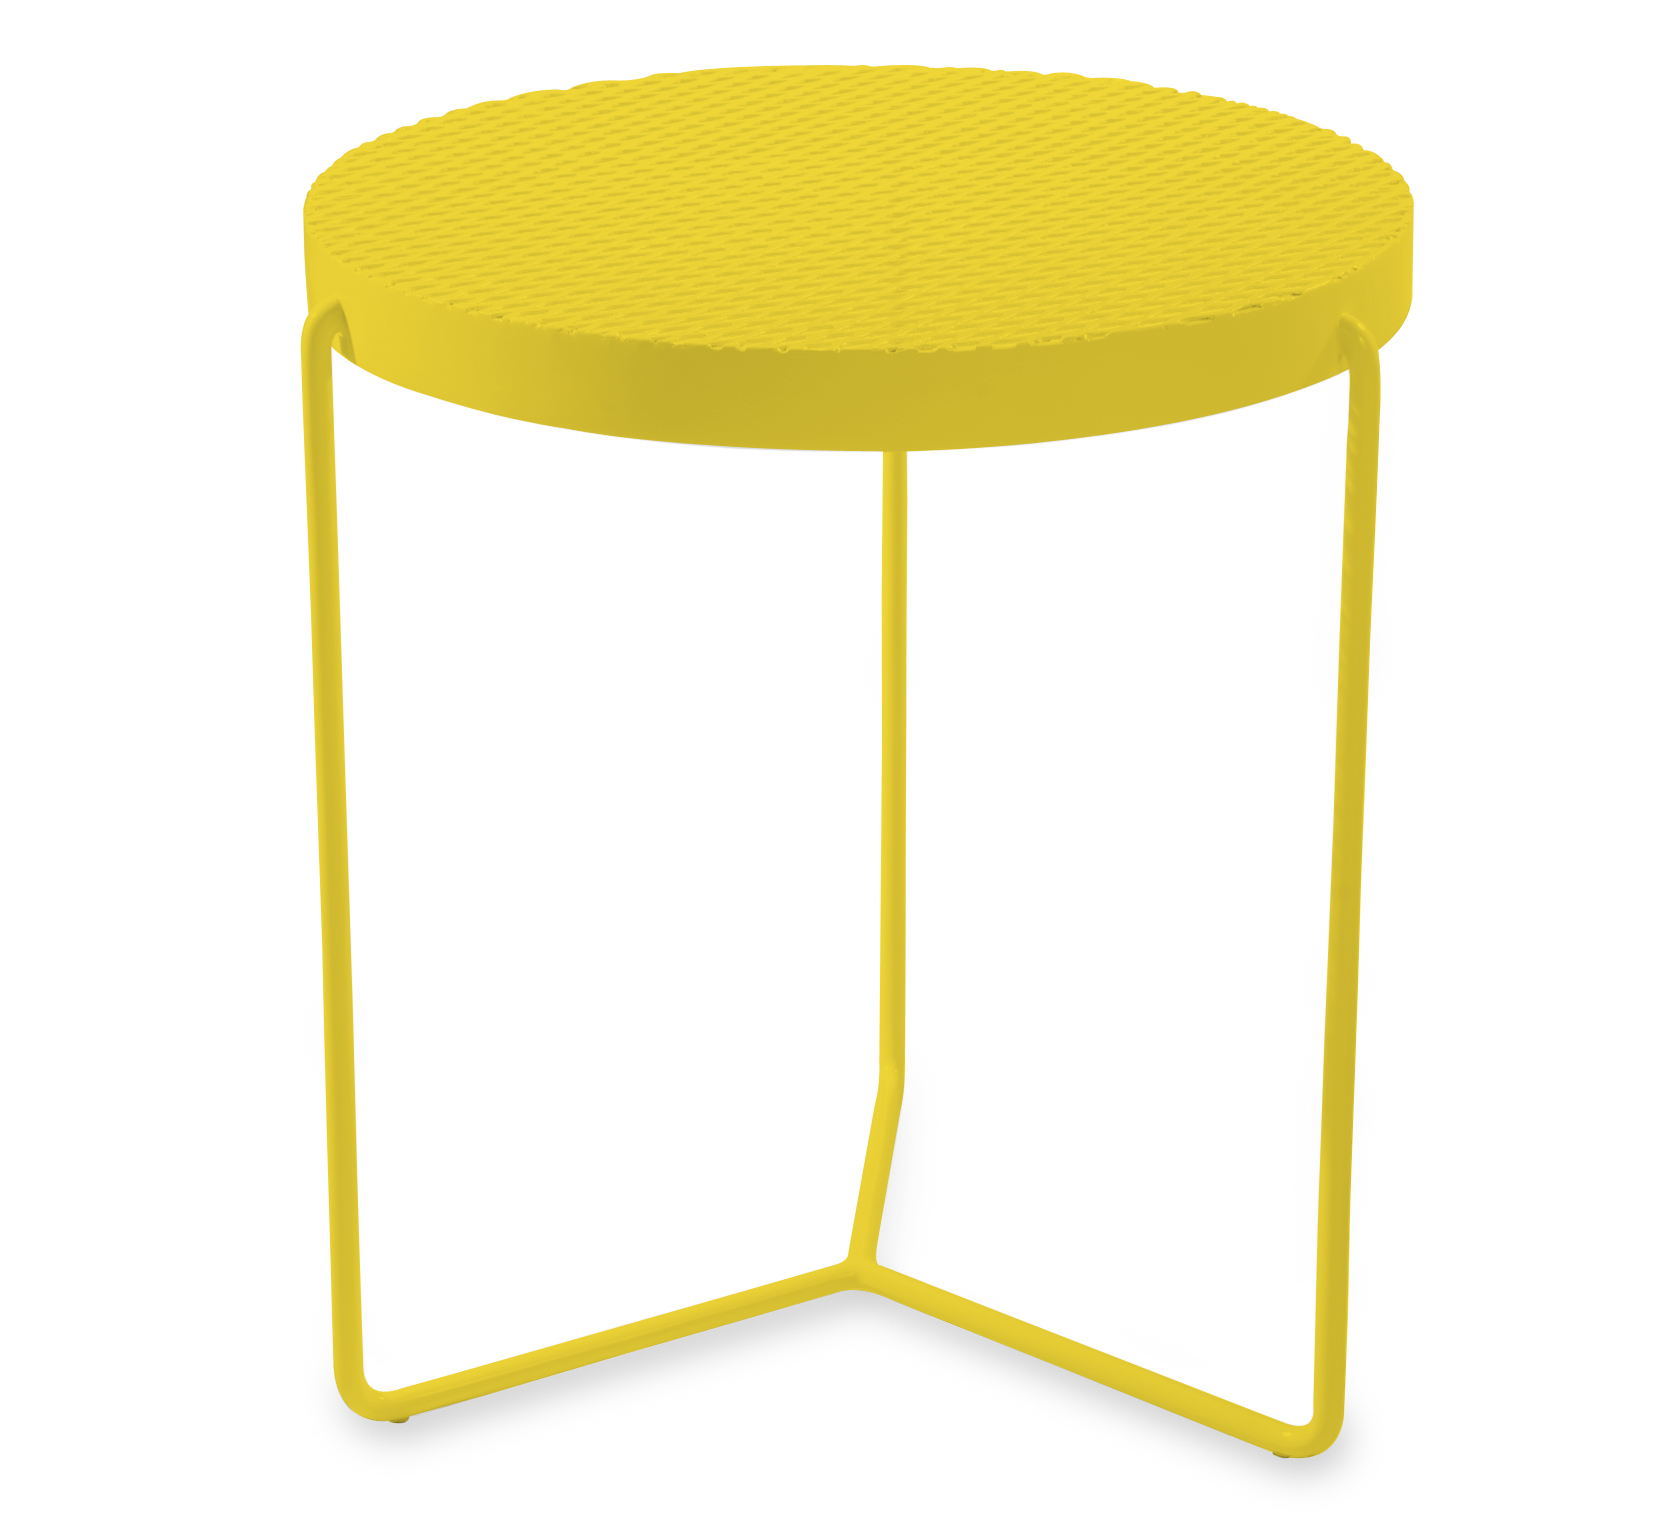 circa-table-medium-perforated-yellow